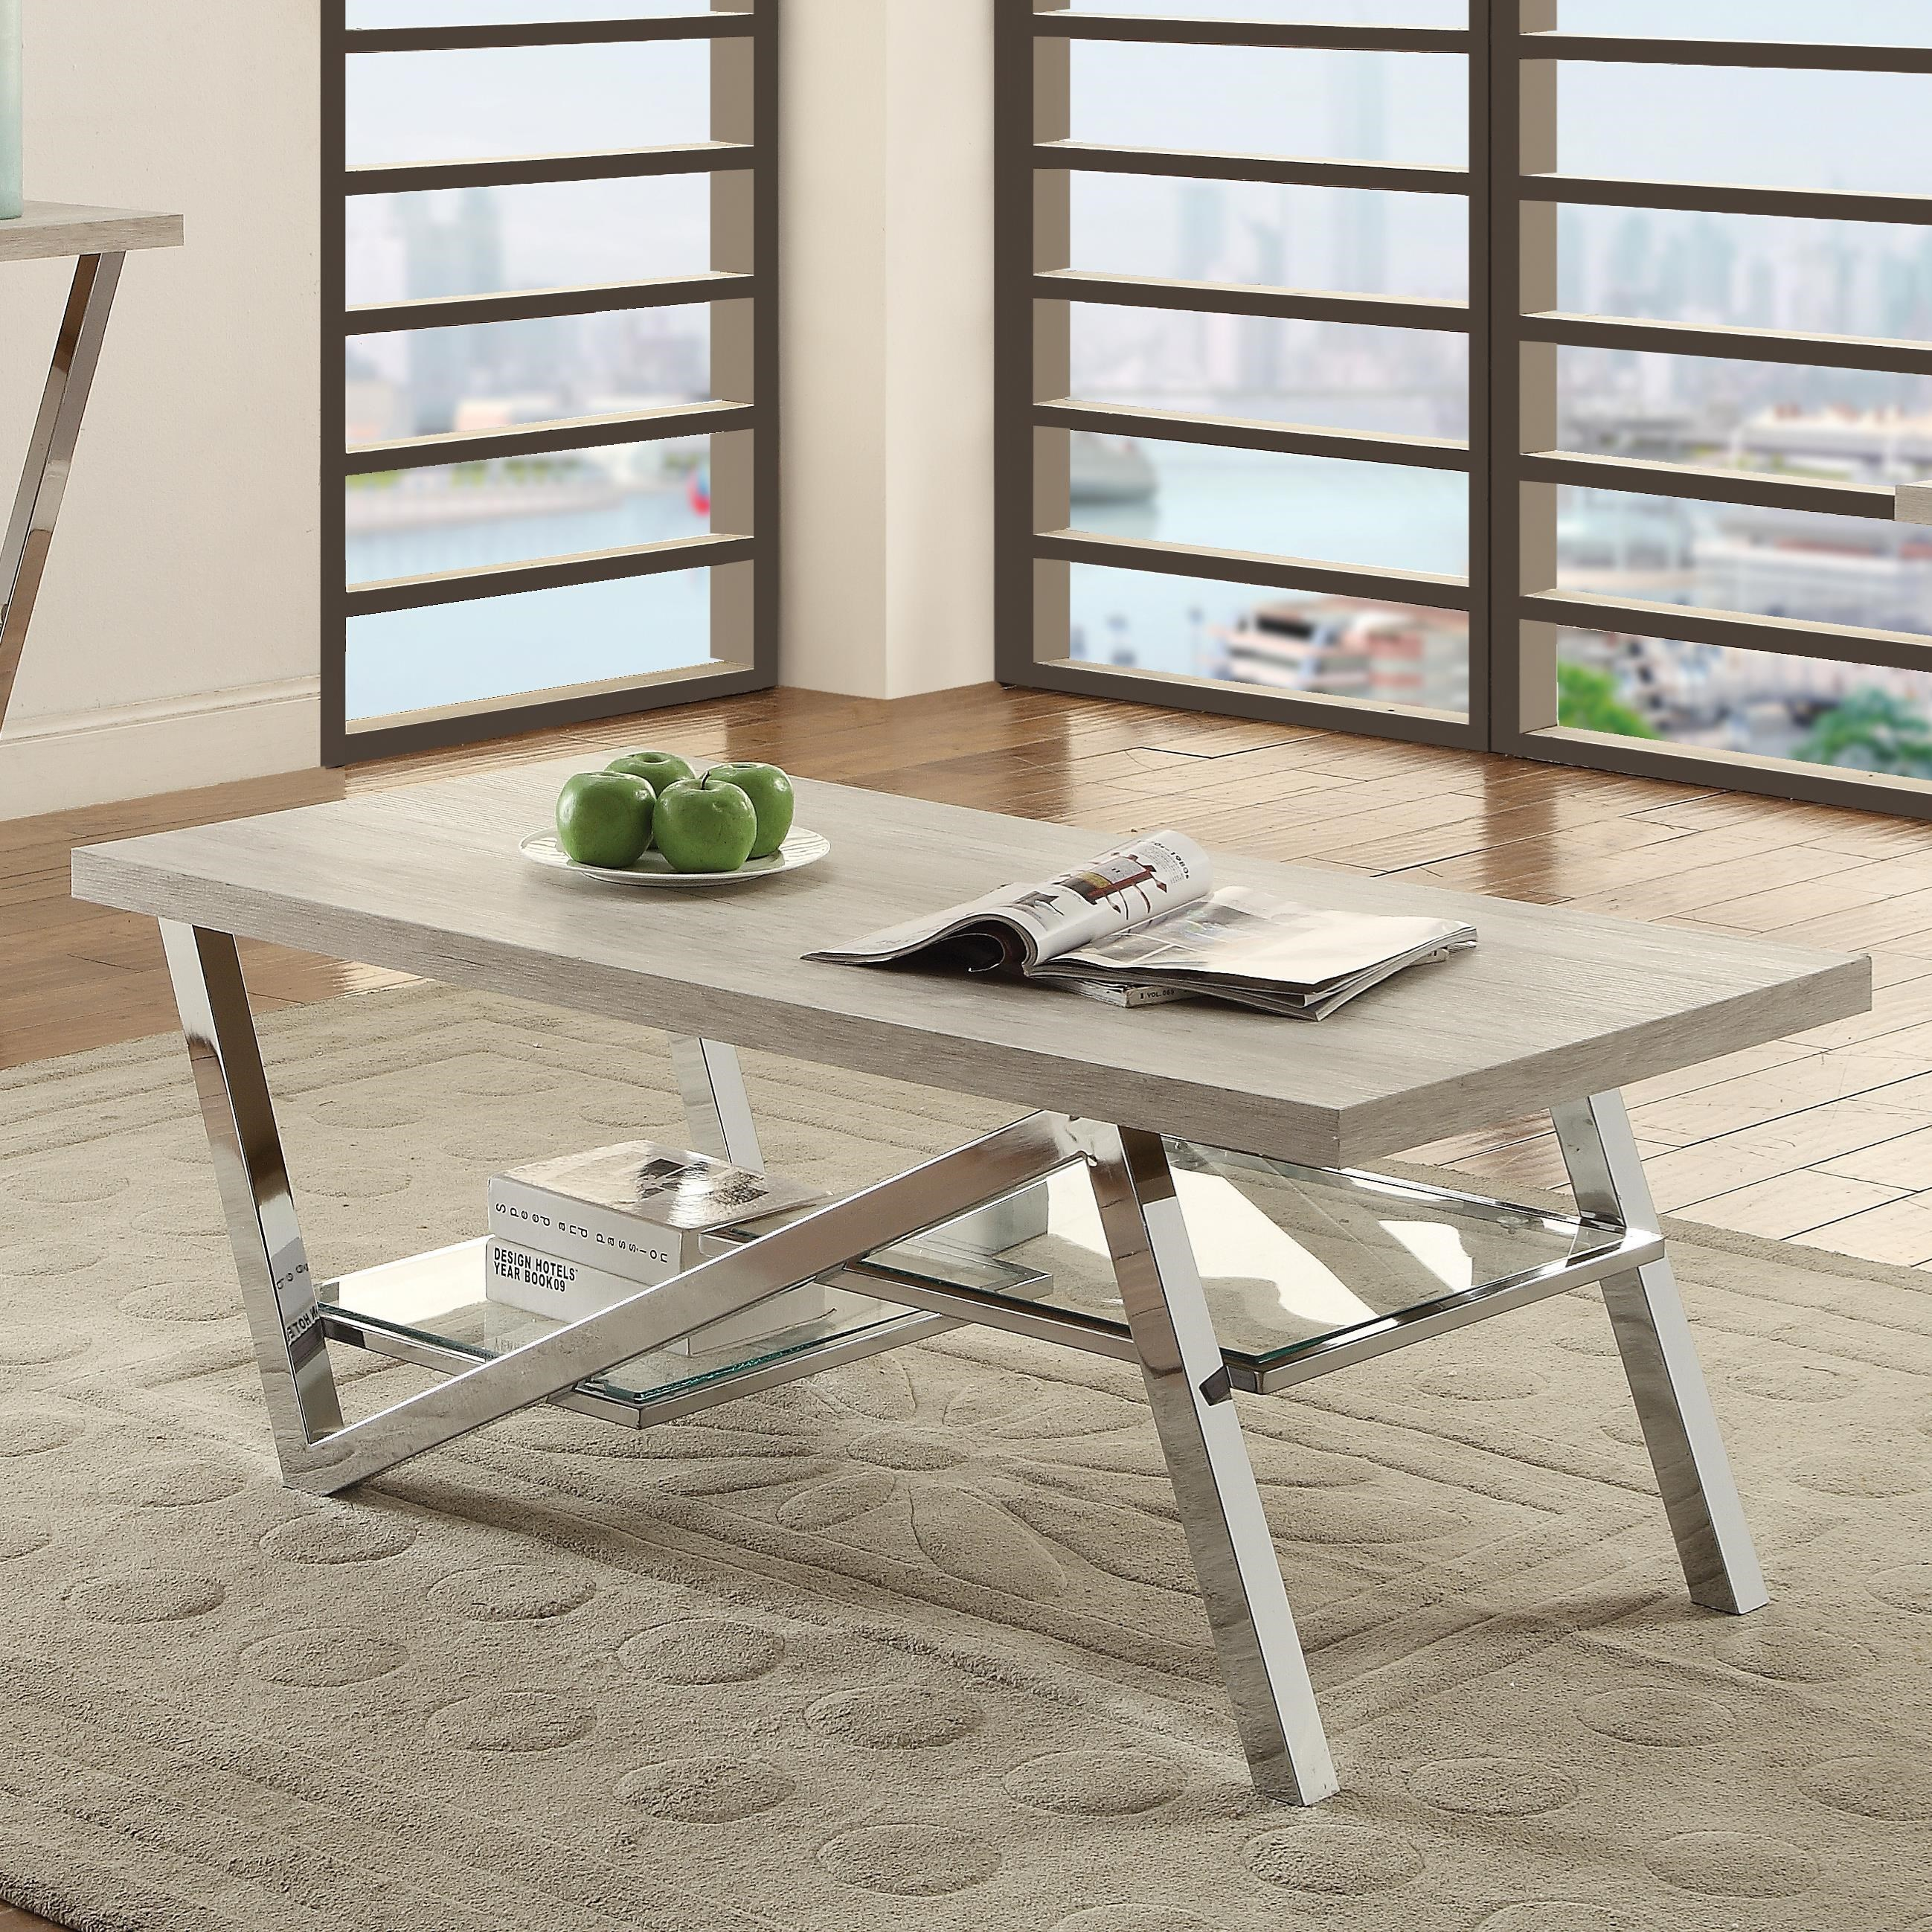 Coaster quorra contemporary coffee table with chrome legs value coaster quorra coffee table item number 720778 geotapseo Image collections